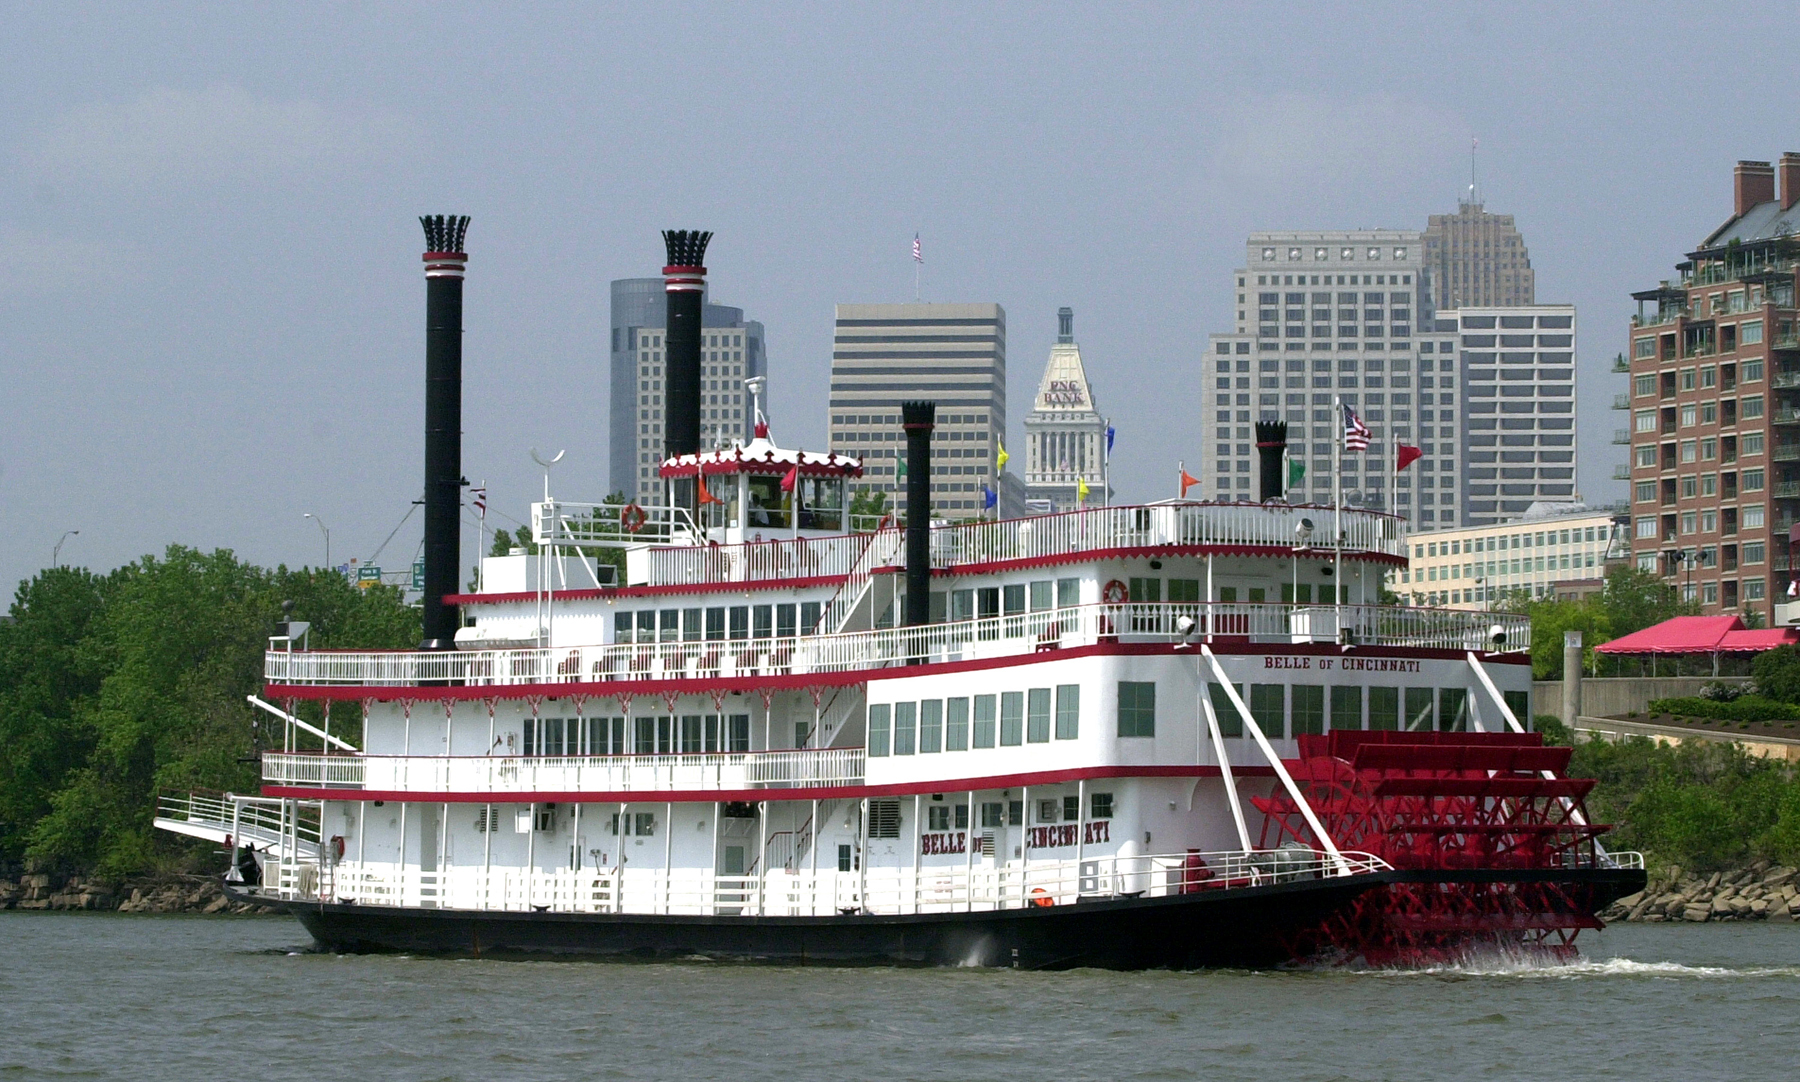 3/Set sail on a riverboat